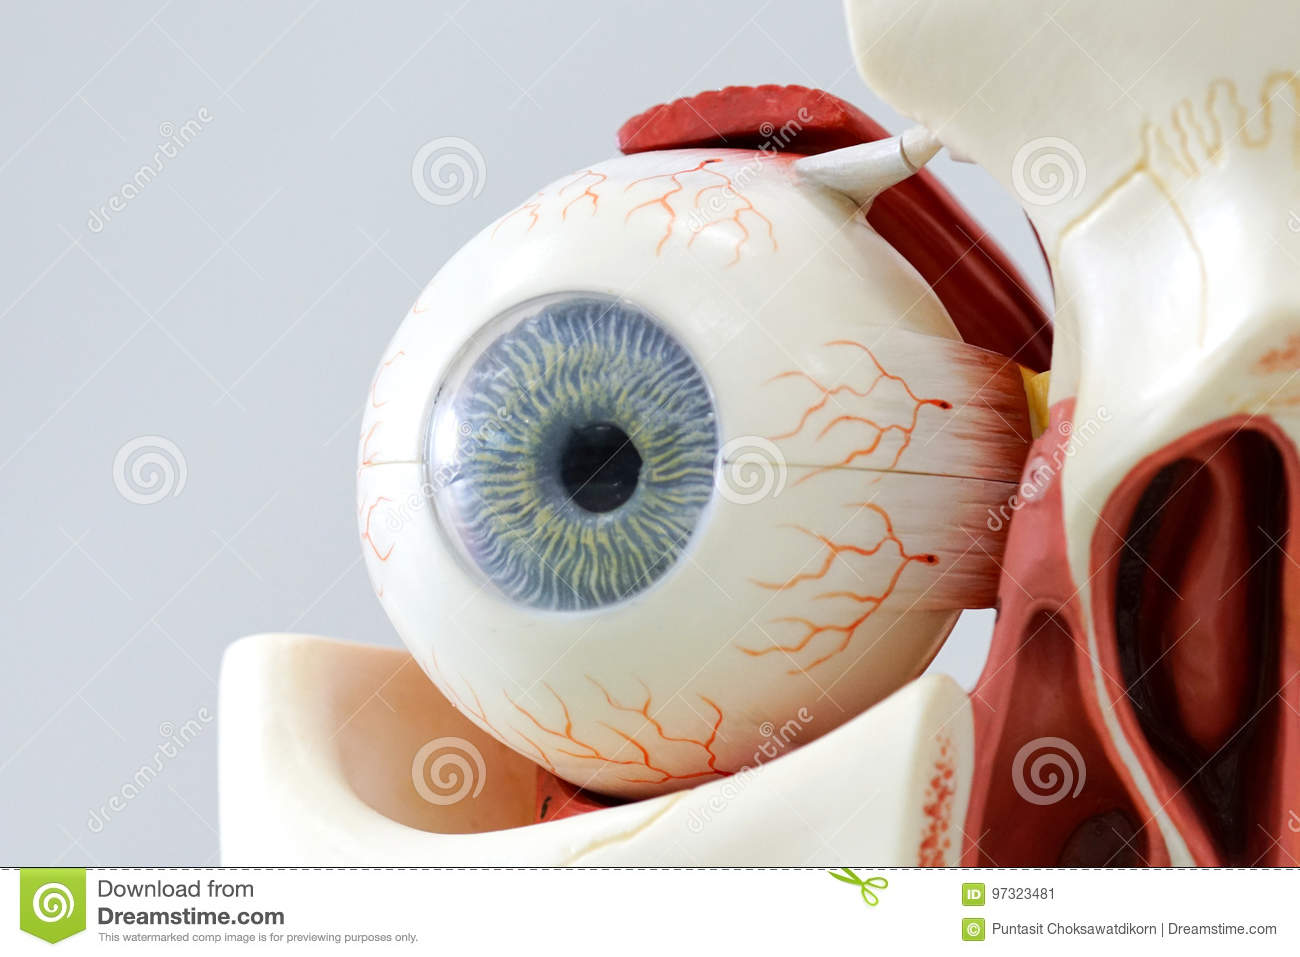 Human eye model stock image. Image of human, people, optical - 97323481